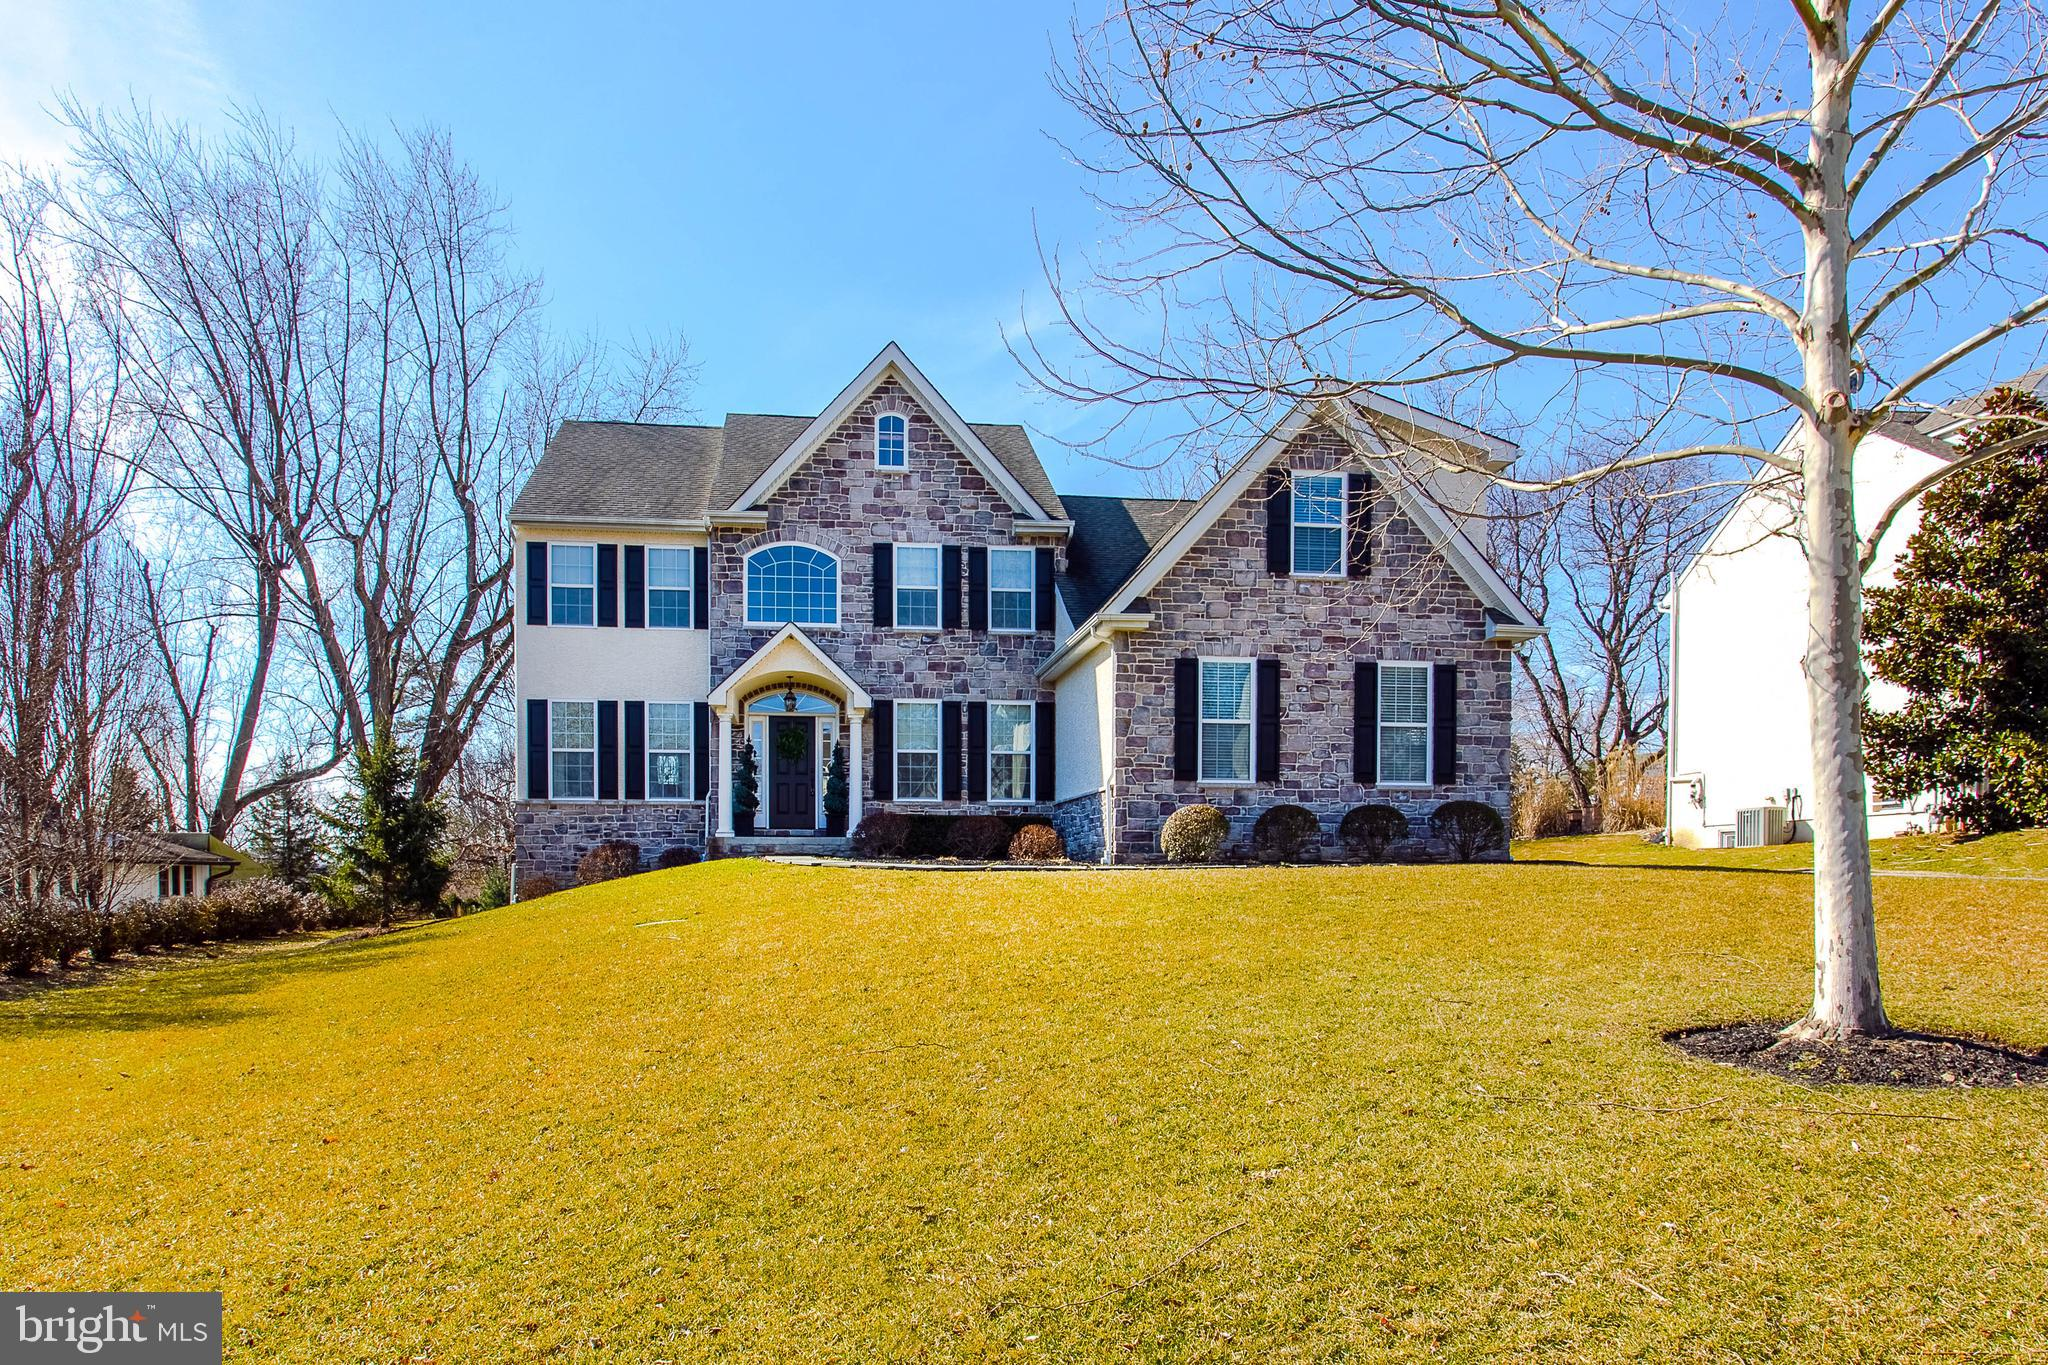 6 SPRINGHOUSE LANE, HAVERTOWN, PA 19083